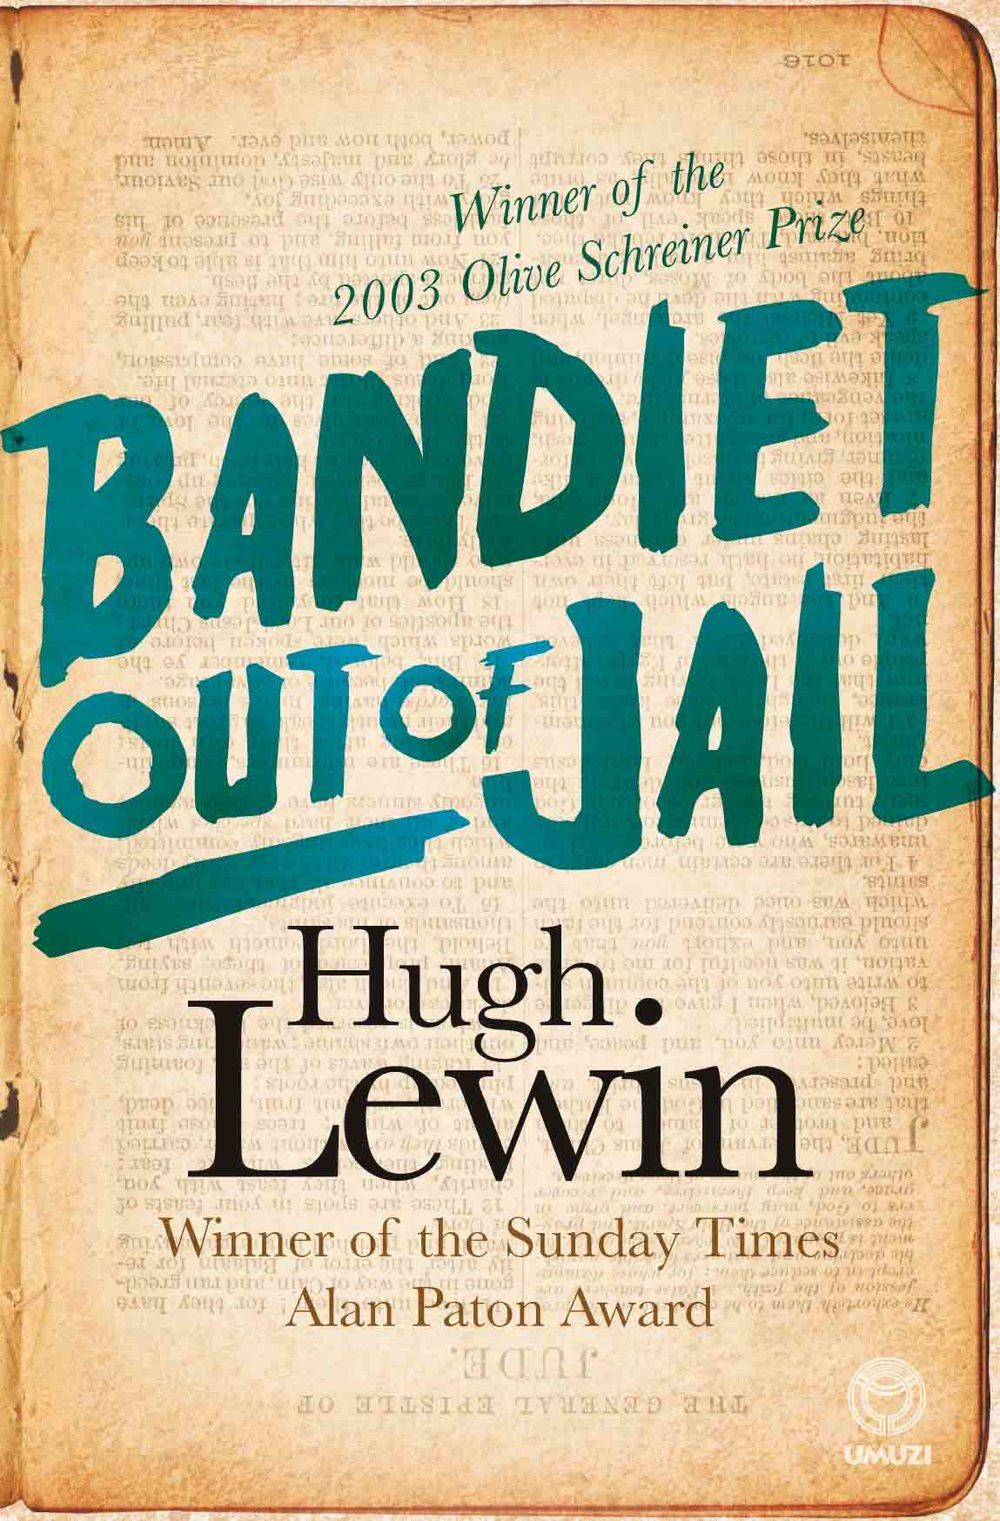 BANDIET OUT OF JAIL Biography, 328 pages, Umuzi, 1989  Convicted on charges of protest sabotage in 1964, Hugh Lewin spent seven years in prison in South Africa, secretly recording his experiences and those of his fellow inmates on the pages of his Bible. On his release, these writings were published in London while the book remained banned in South Africa for many years. Hailed as a classic of South African prison writing, Bandiet out of Jail contains the full text of the original, as well as poems and descriptions of Lewin's experiences with the Truth and Reconciliation Commission that offer unique insights into changes in the political and emotional landscape since his return to South Africa in 1992. The illustrations comprise original prison drawings by Harold Strachan, twice a fellow bandiet with Lewin in Pretoria. Bandiet out of Jail was awarded the Olive Schreiner Prize in 2003.